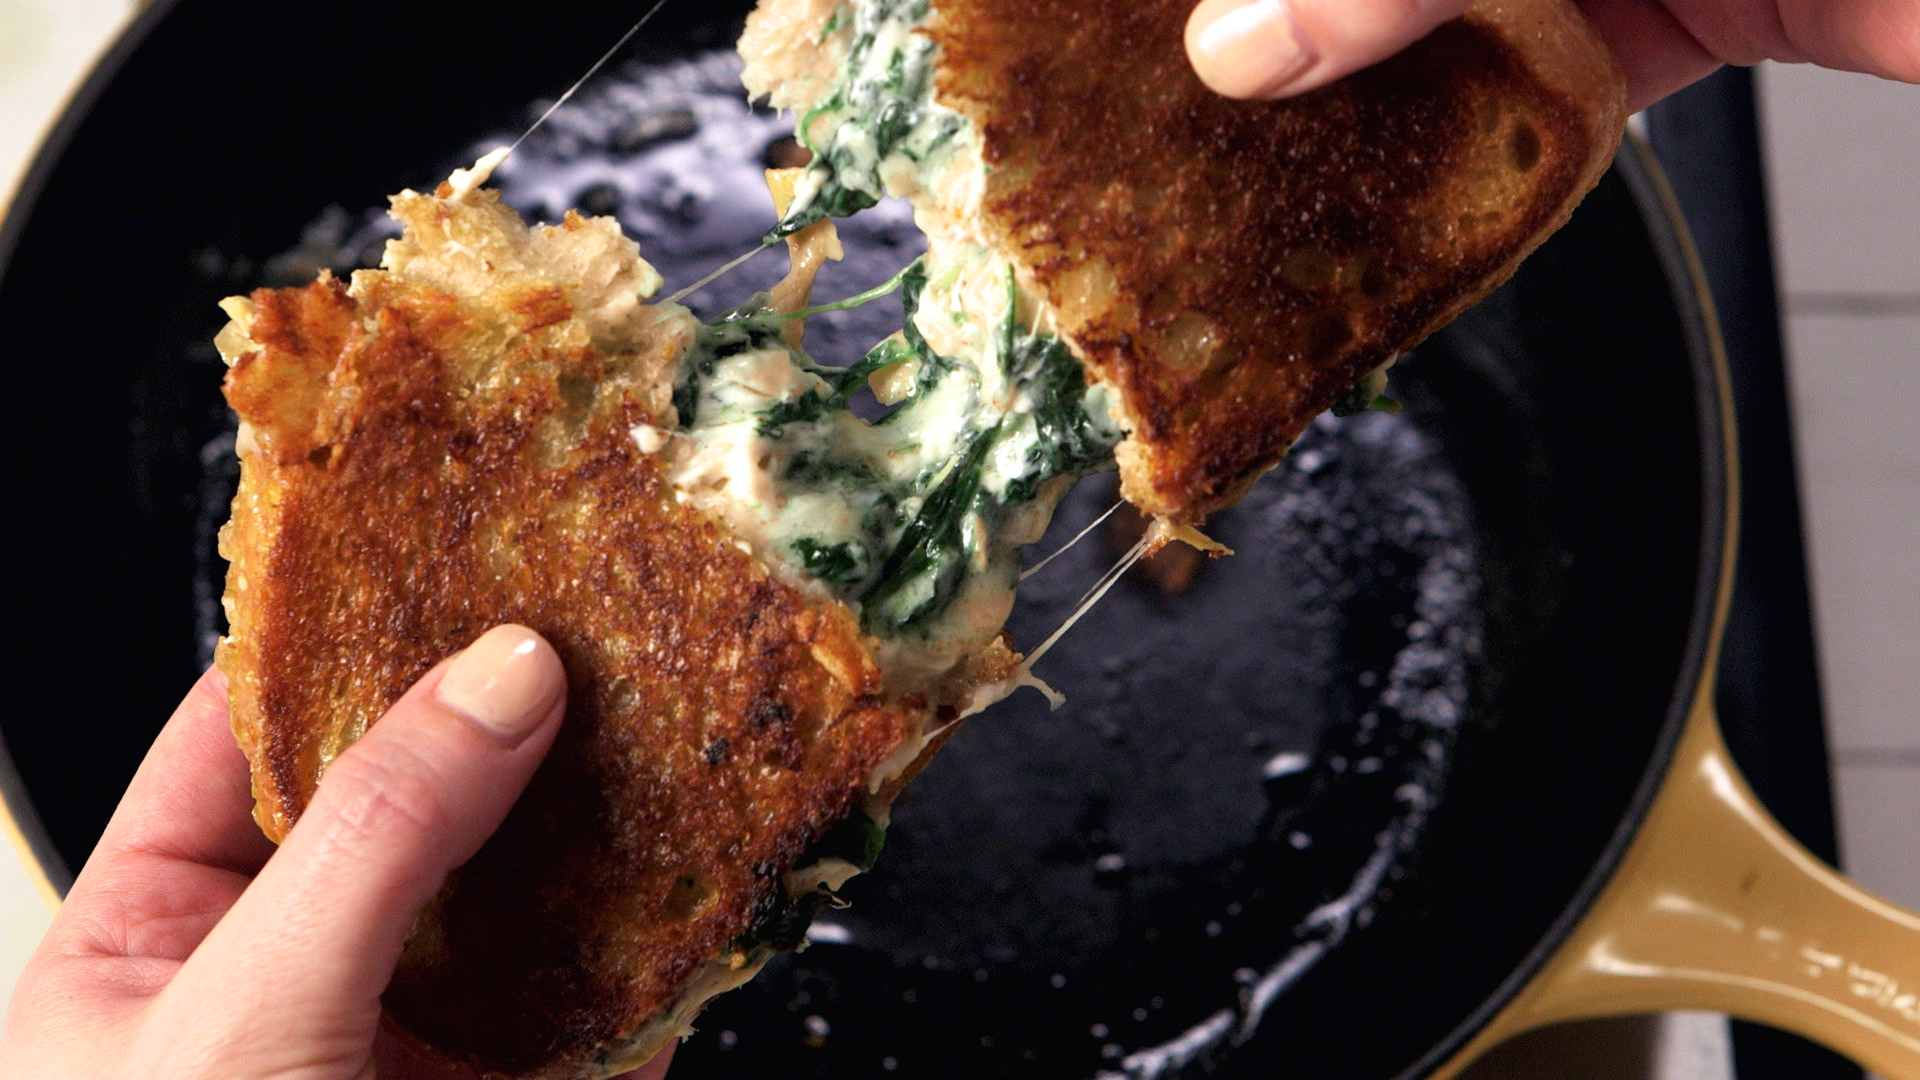 Best Spinach-Artichoke Dip Grilled Cheese Recipe - How to Make Spinach ...